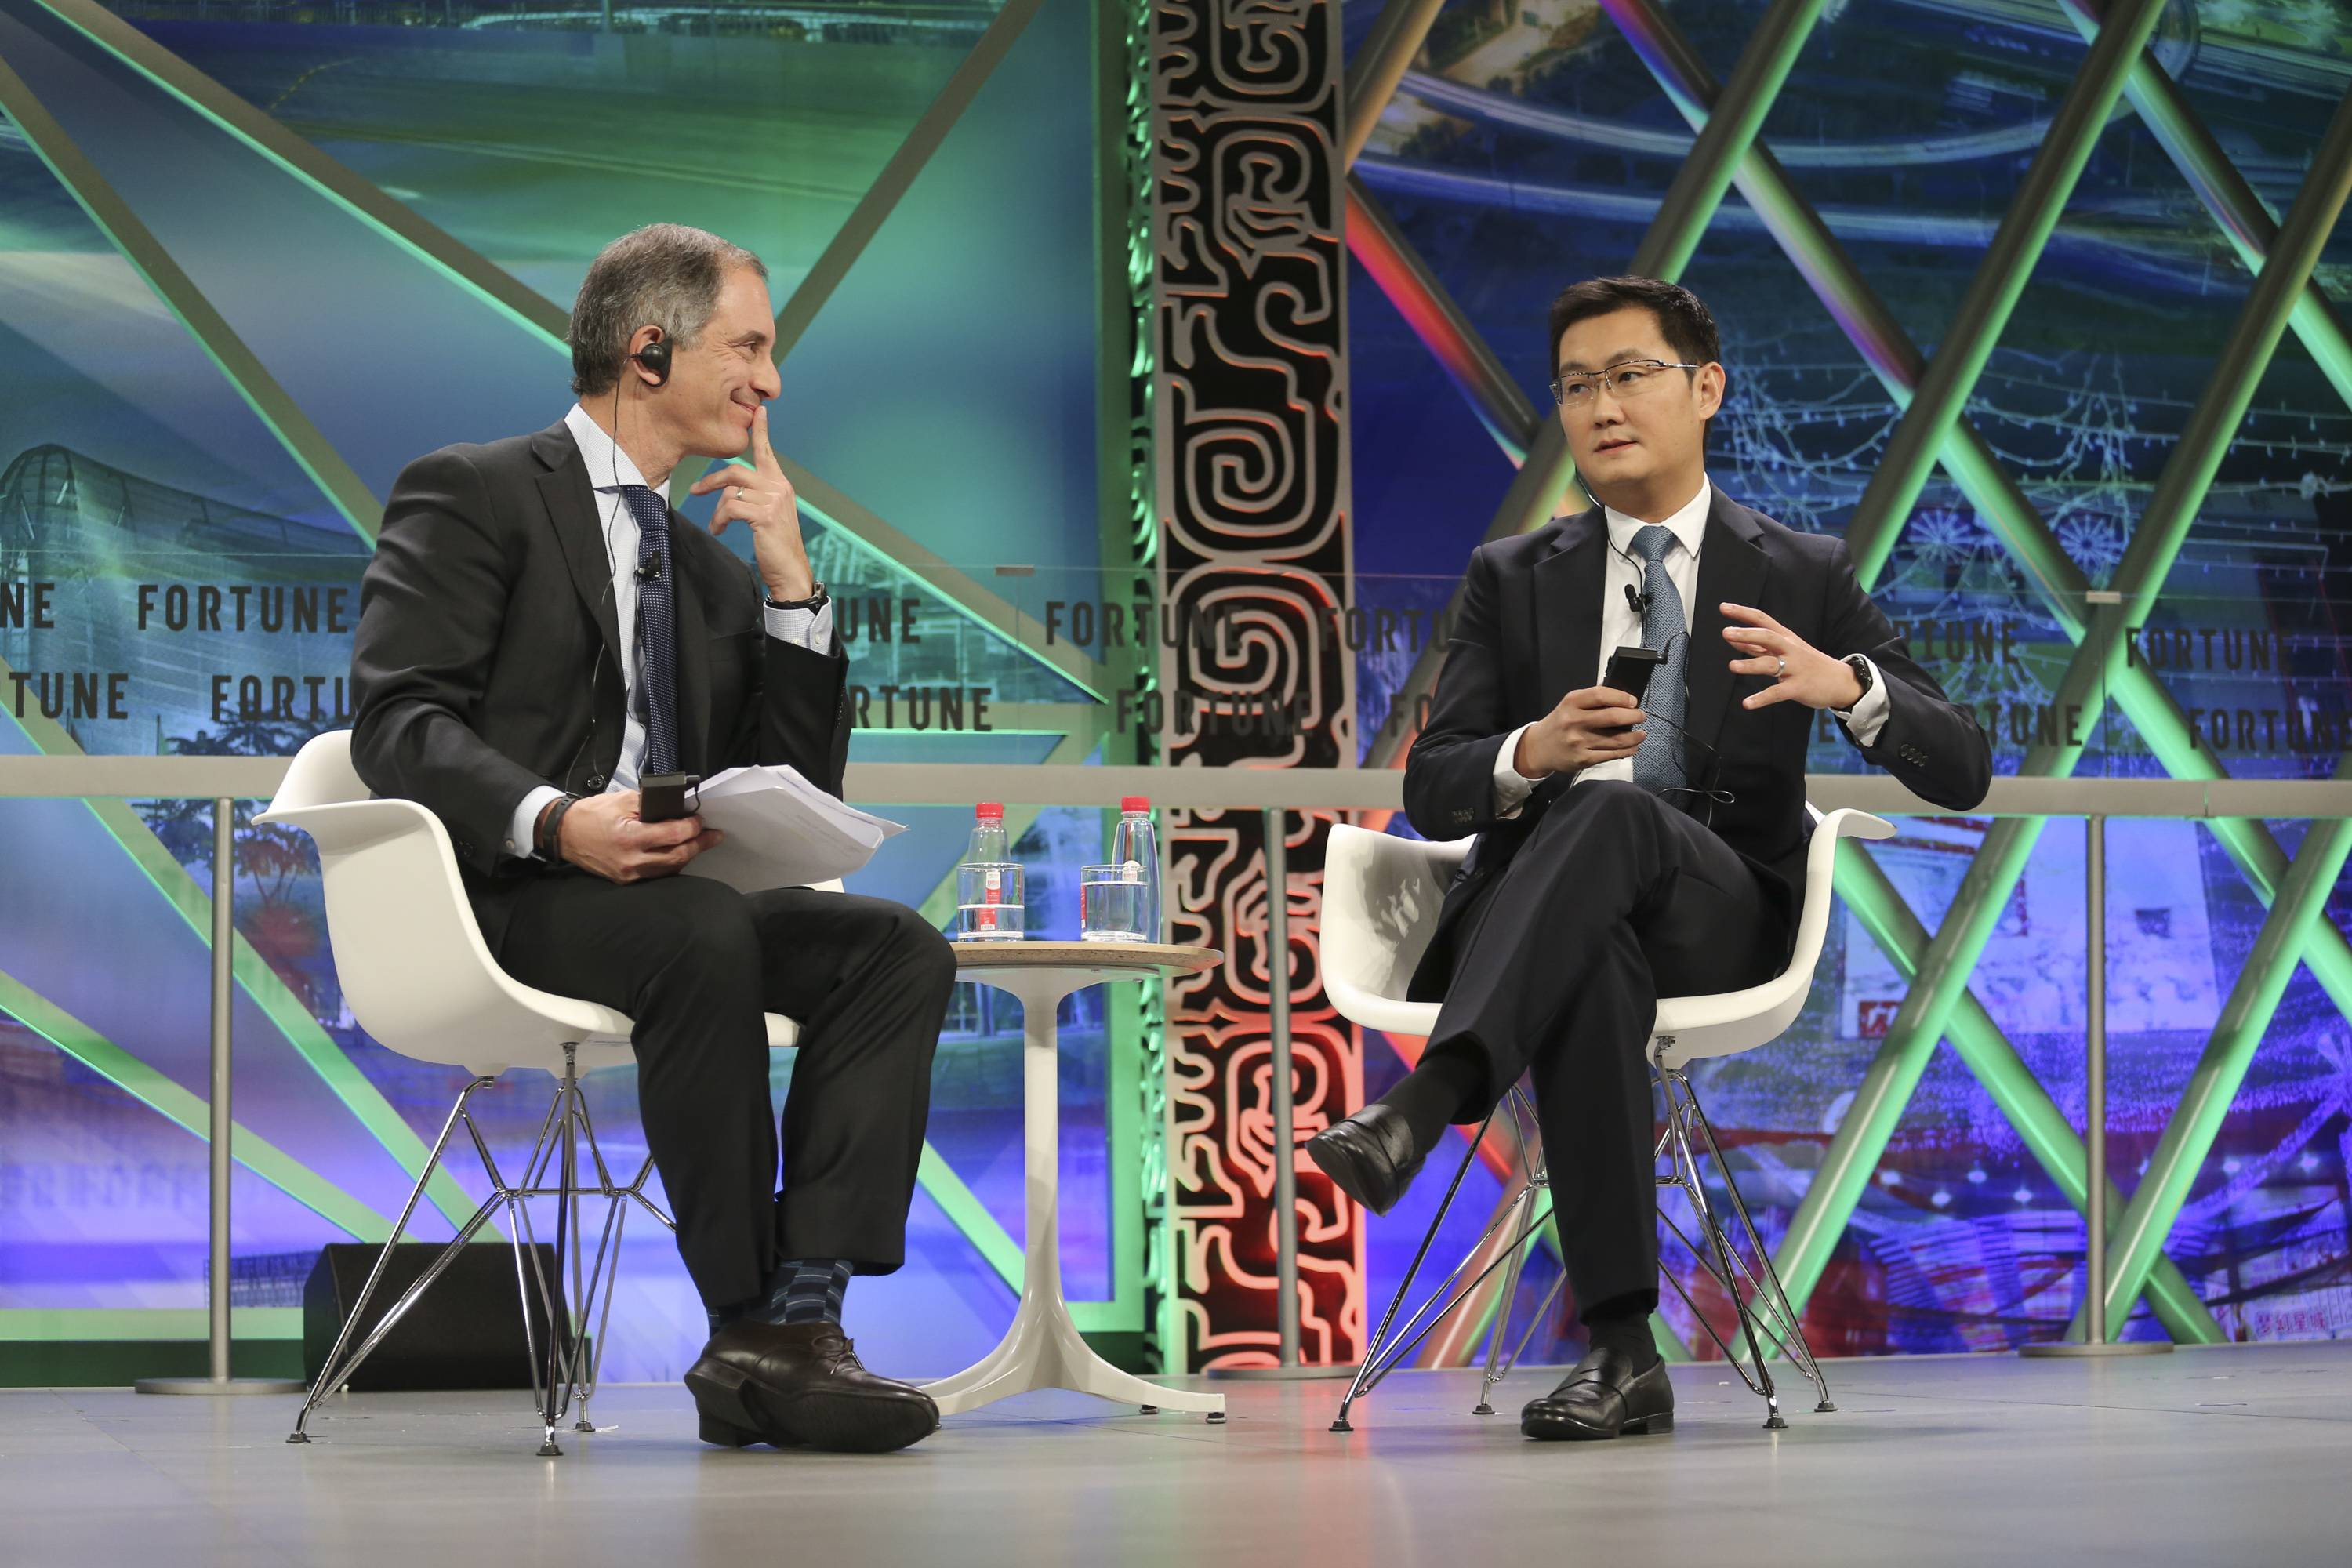 004 Wednesday, December 6th, 2017 Fortune Global Forum 2017 Guangzhou, China 3:05PM - 3:35PM INNOVATION AND ECOSYSTEM The founder, chairman and CEO of one of the world's largest Internet enterprises discusses how the mobile Internet brings innovative products to users in China, enhancing people's lives and transforming businesses in an expanding offline-to-online ecosystem. Pony Ma, Co-founder, Chairman, and CEO, Tencent Interviewer: Adam Lashinsky, Executive Editor, Fortune and Co-Chair, Fortune Global Forum Photograph by Vivek Prakash/Fortune